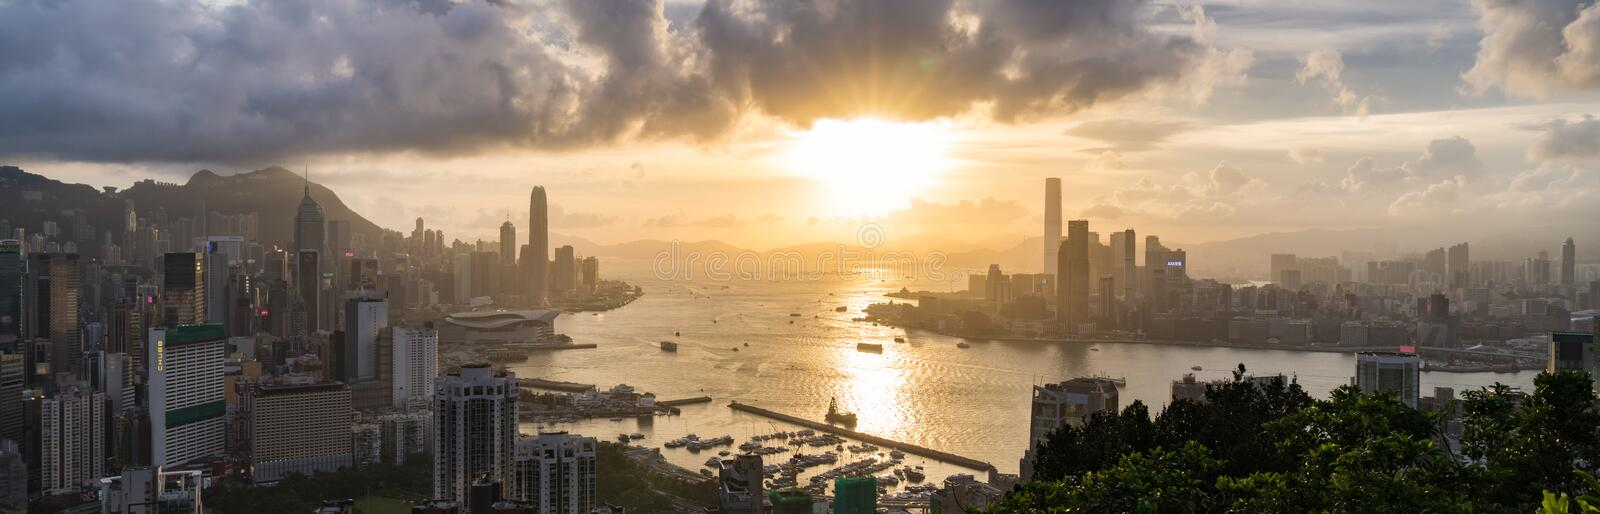 Panoramic landscape or cityscape of Hong Kong island, Victoria harbour, and Kowloon city at sunset. Asia travel concept stock photo